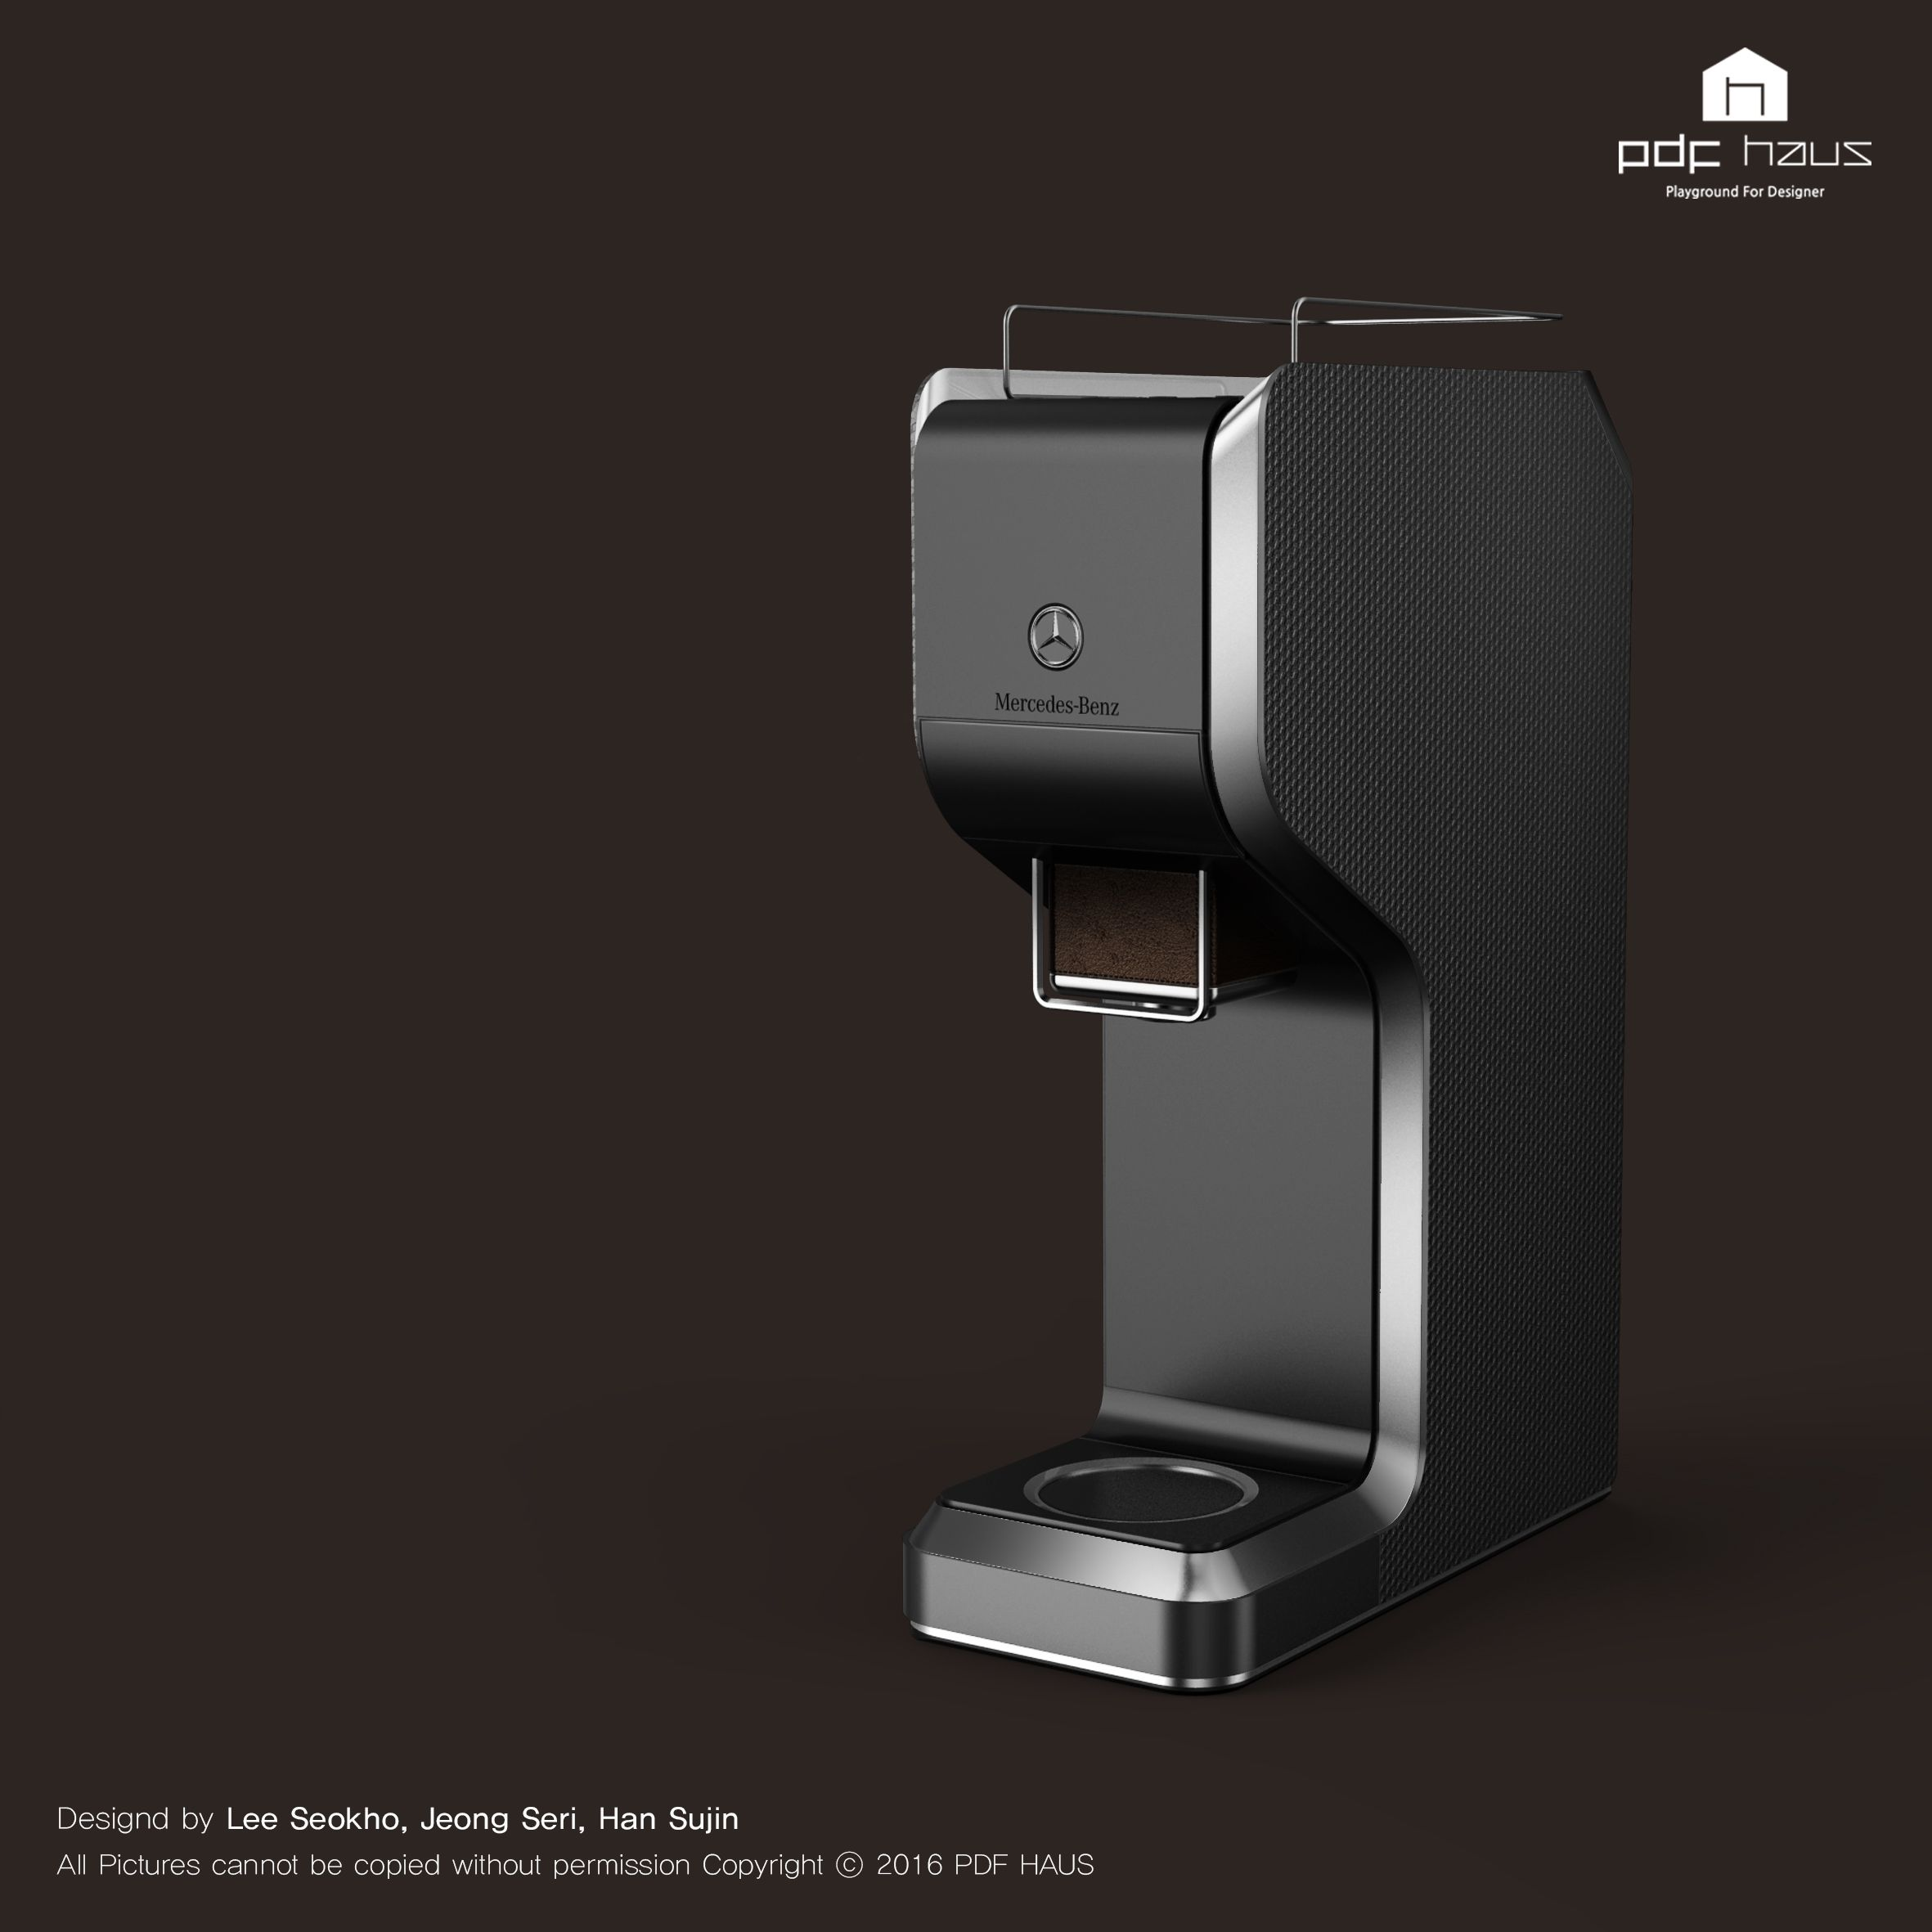 Ipad 2010 work red dot award product design - Benz Coffee Machine Product Design Industrial Design